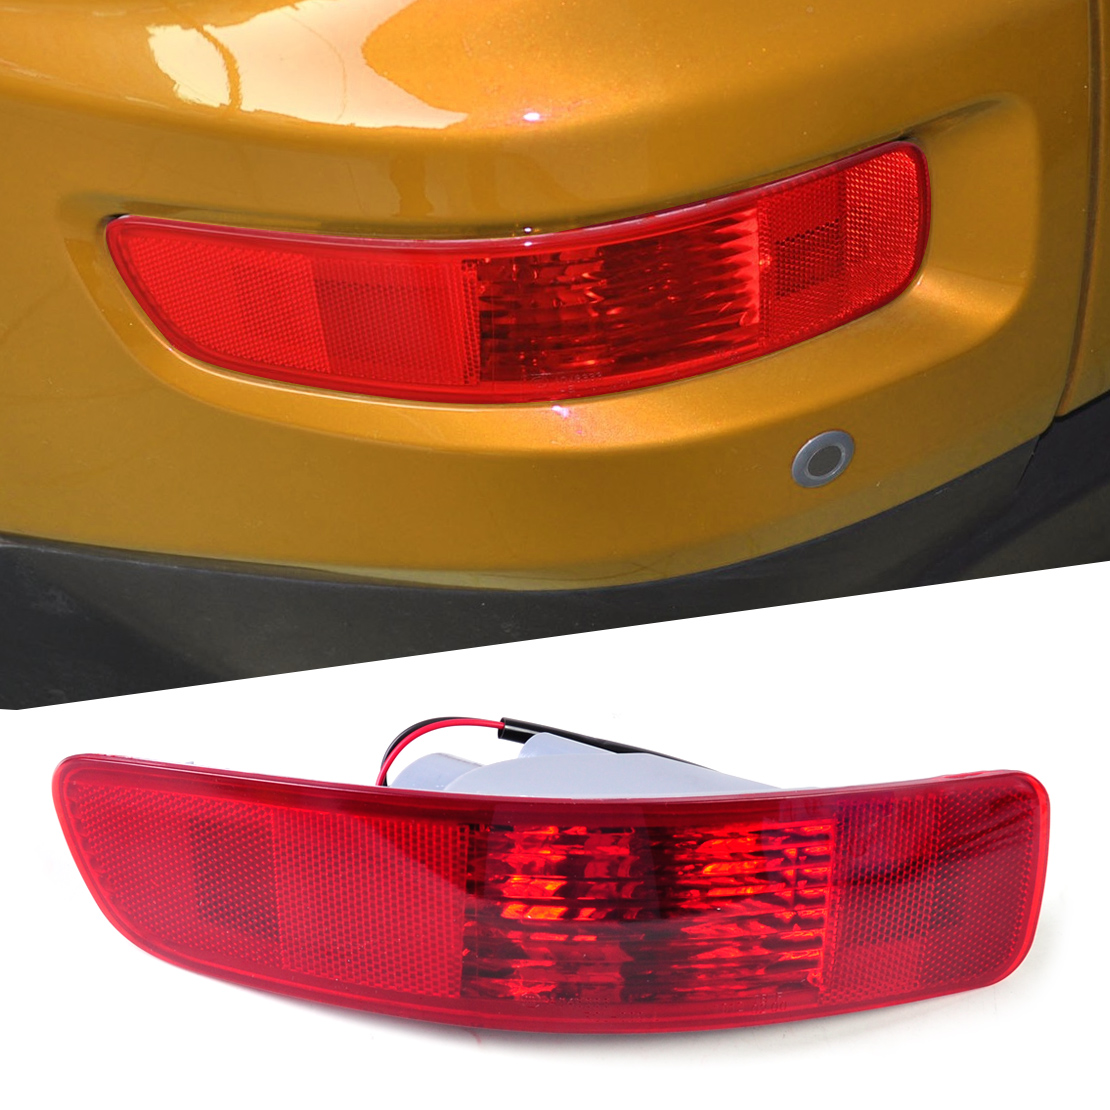 DWCX SL693-LH SL693 Rear Fog Lamp Light Left Side for Mitsubishi Outlander 2007 2008 2009 2010 2011 2012 2013 rear fog lamp spare tire cover tail bumper light fit for mitsubishi pajero shogun v87 v93 v97 2007 2008 2009 2010 2011 2012 2015